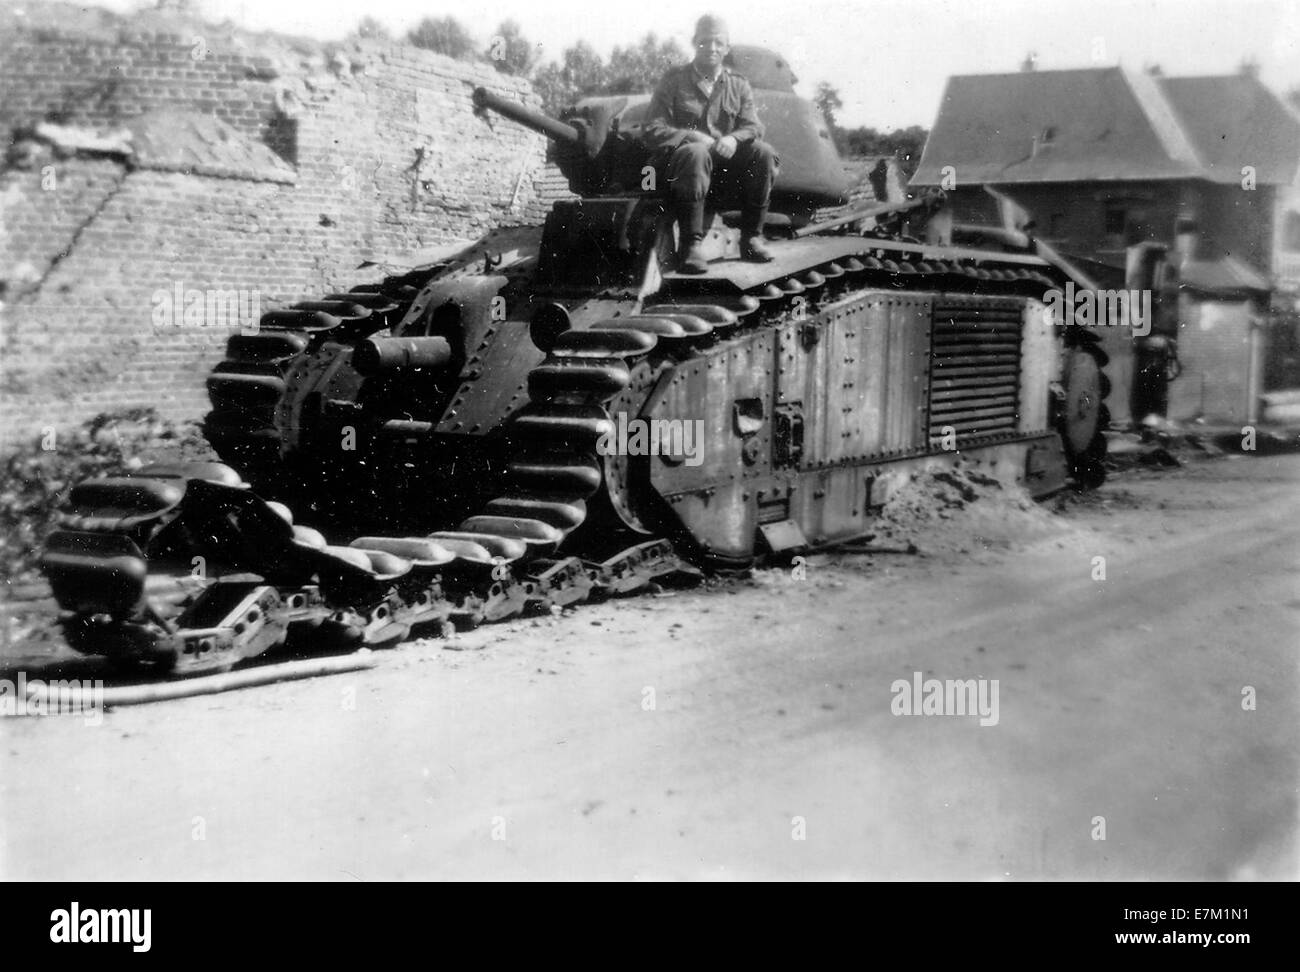 Disabled Char B1 1940 - Stock Image